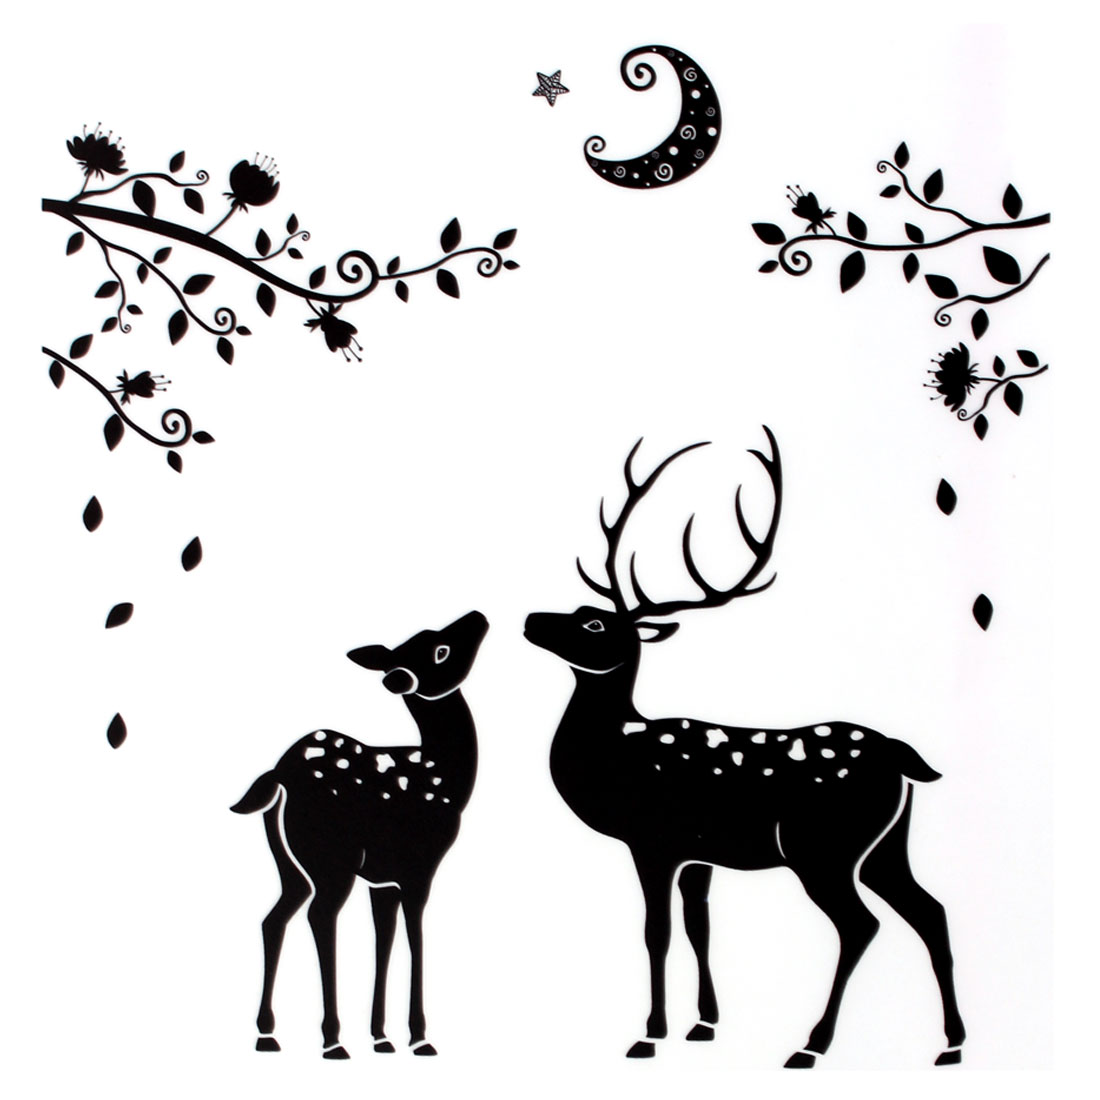 Household Bathroom PVC Deer Pattern Removable Wall Sticker Black White 90 x 60cm